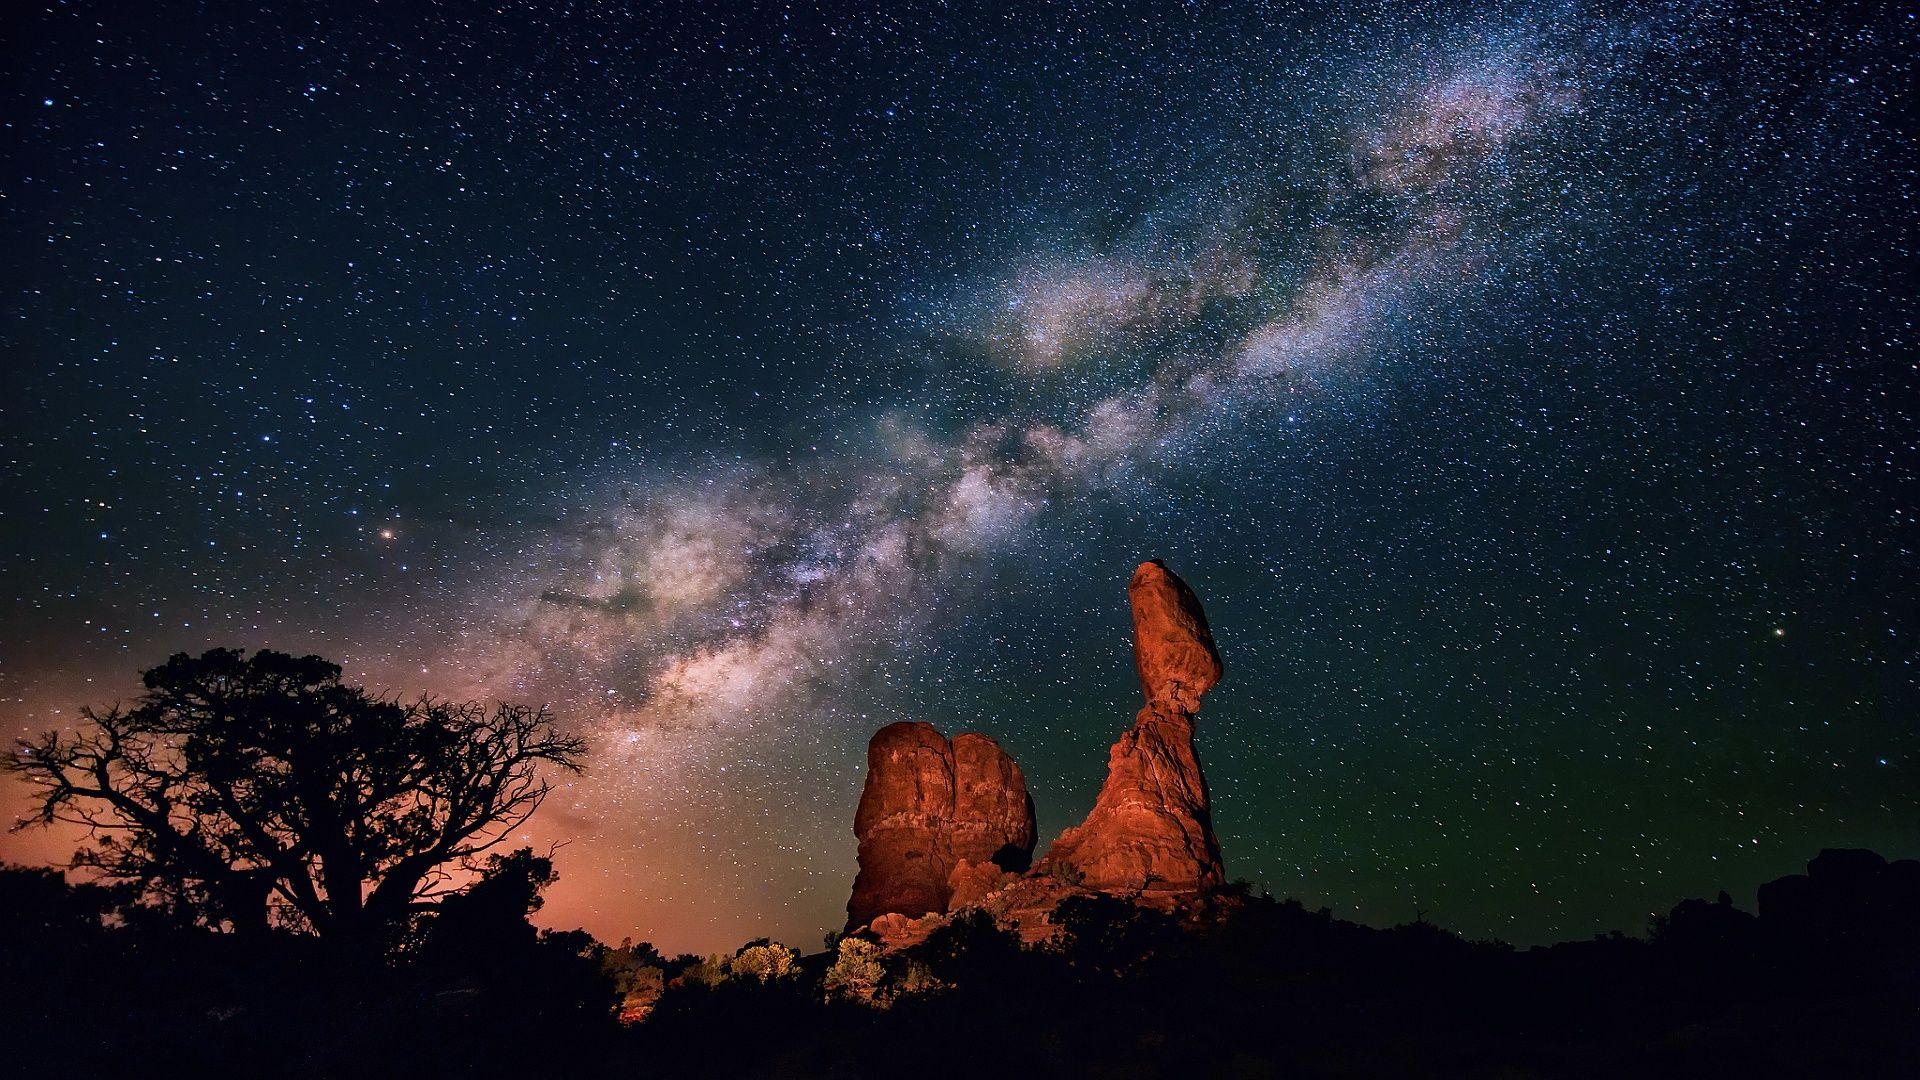 milky way hd 1920x1080 wallpapers | astronomy | pinterest | natural